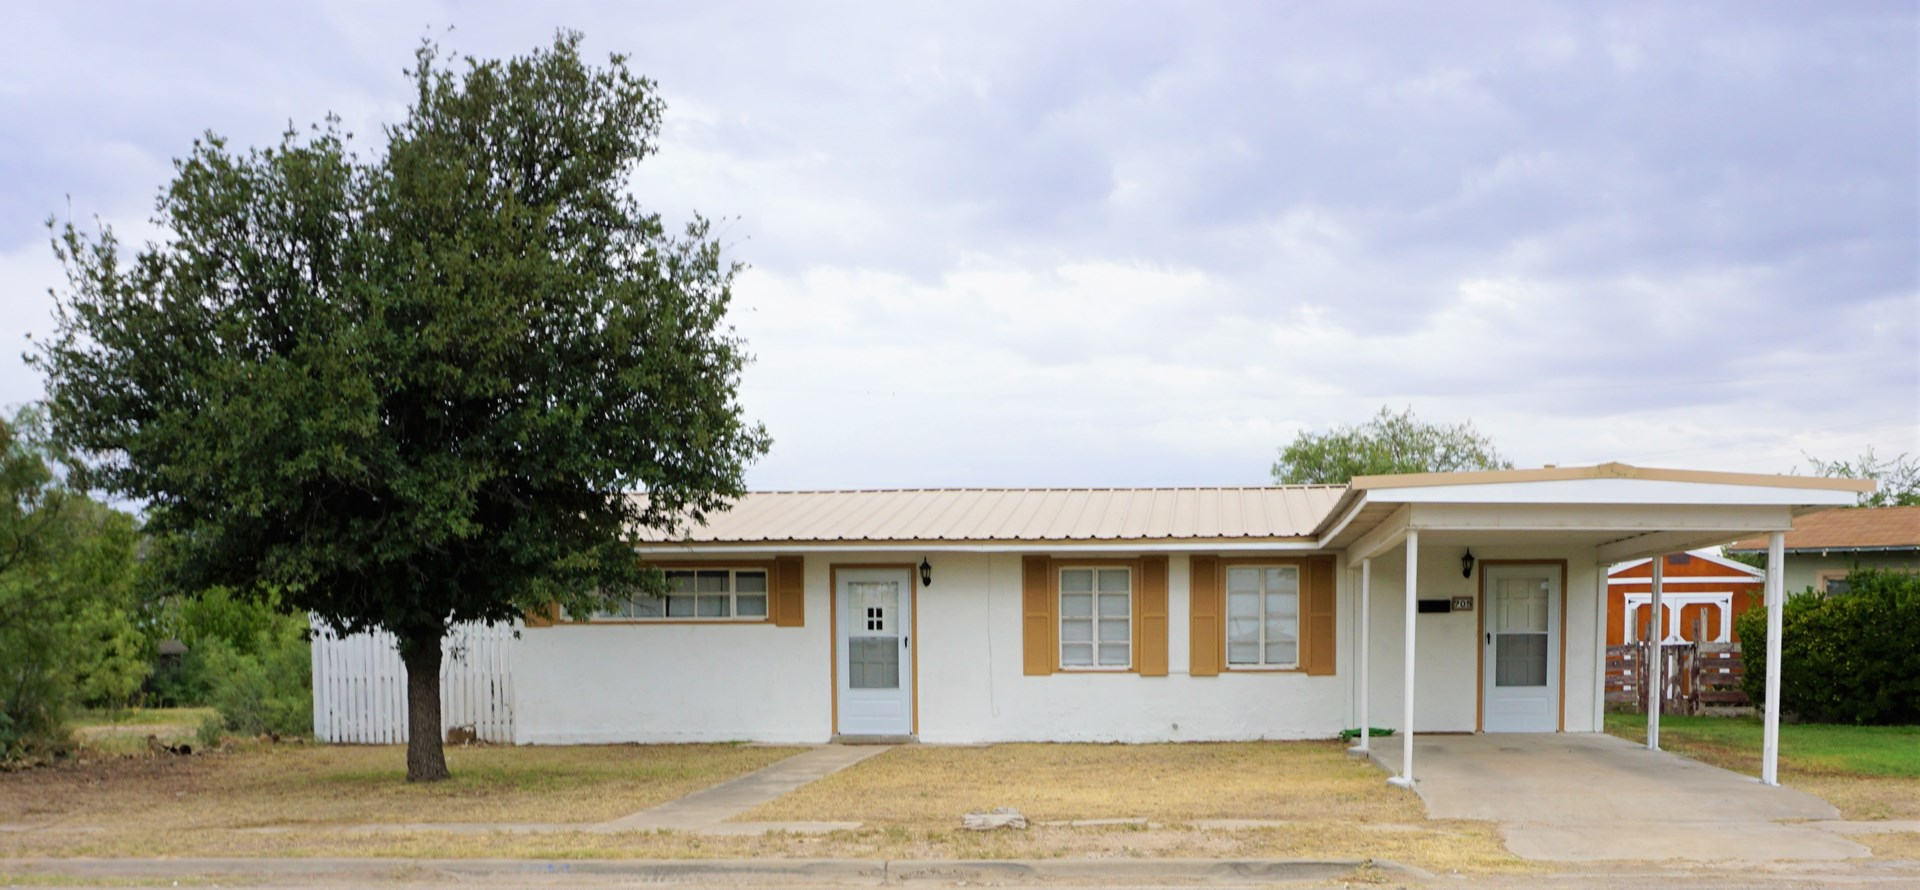 COZY 2 BDRM AND 1 BA HOME LOCATED IN FORT STOCKTON TEXAS